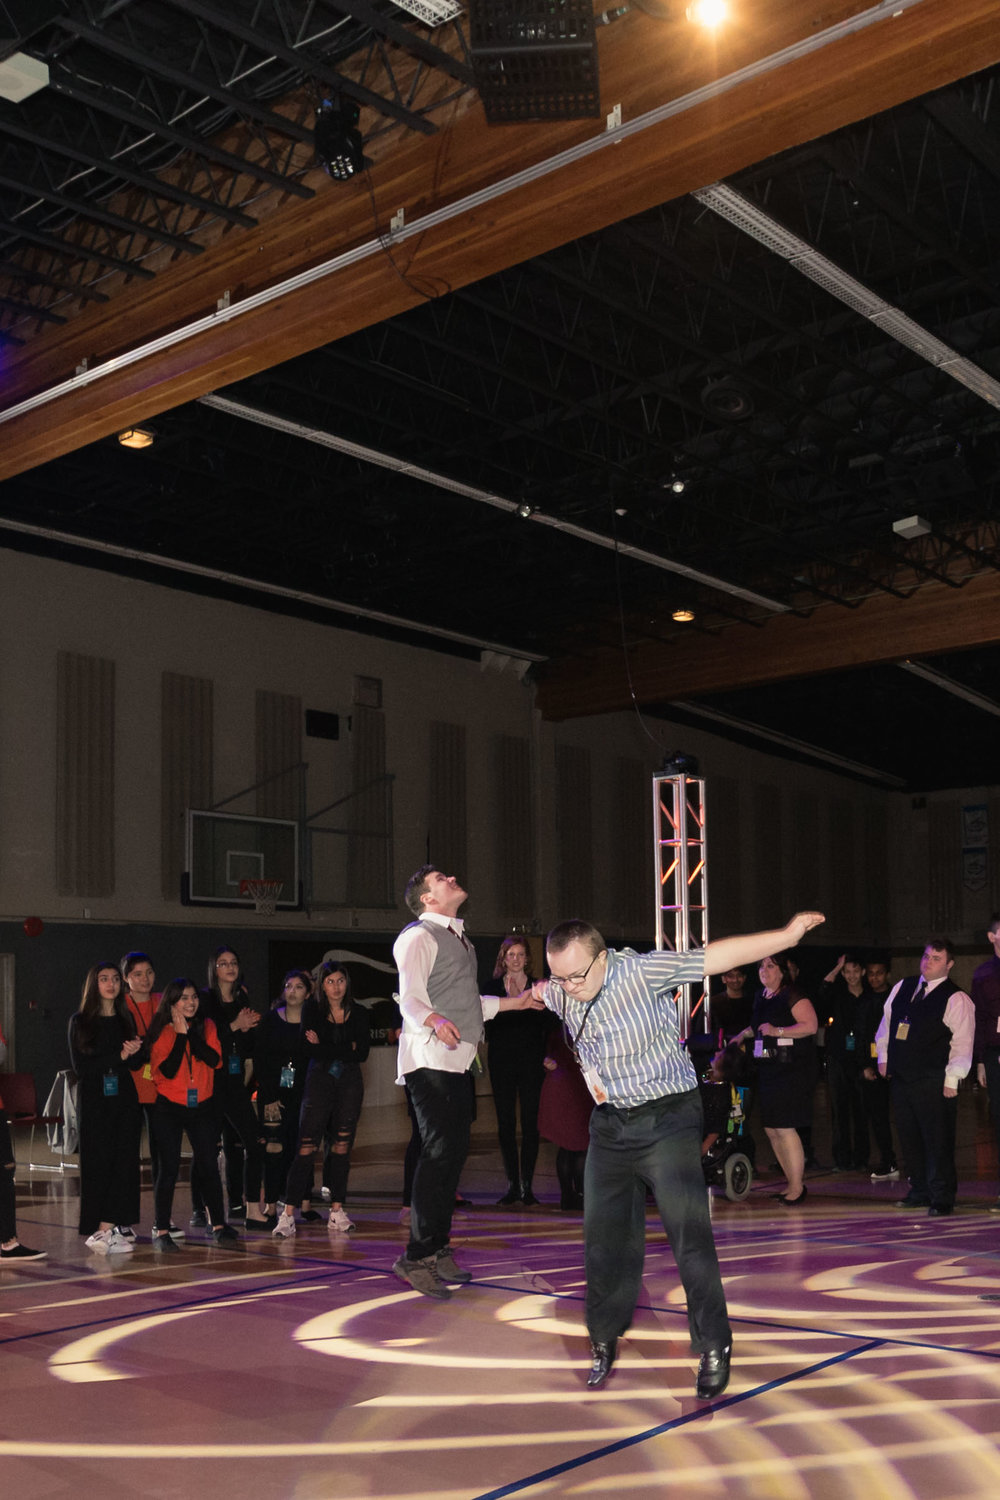 InBetweenDreamsWedding_NightToShine2018_HorizonChurch (275 of 514).jpg